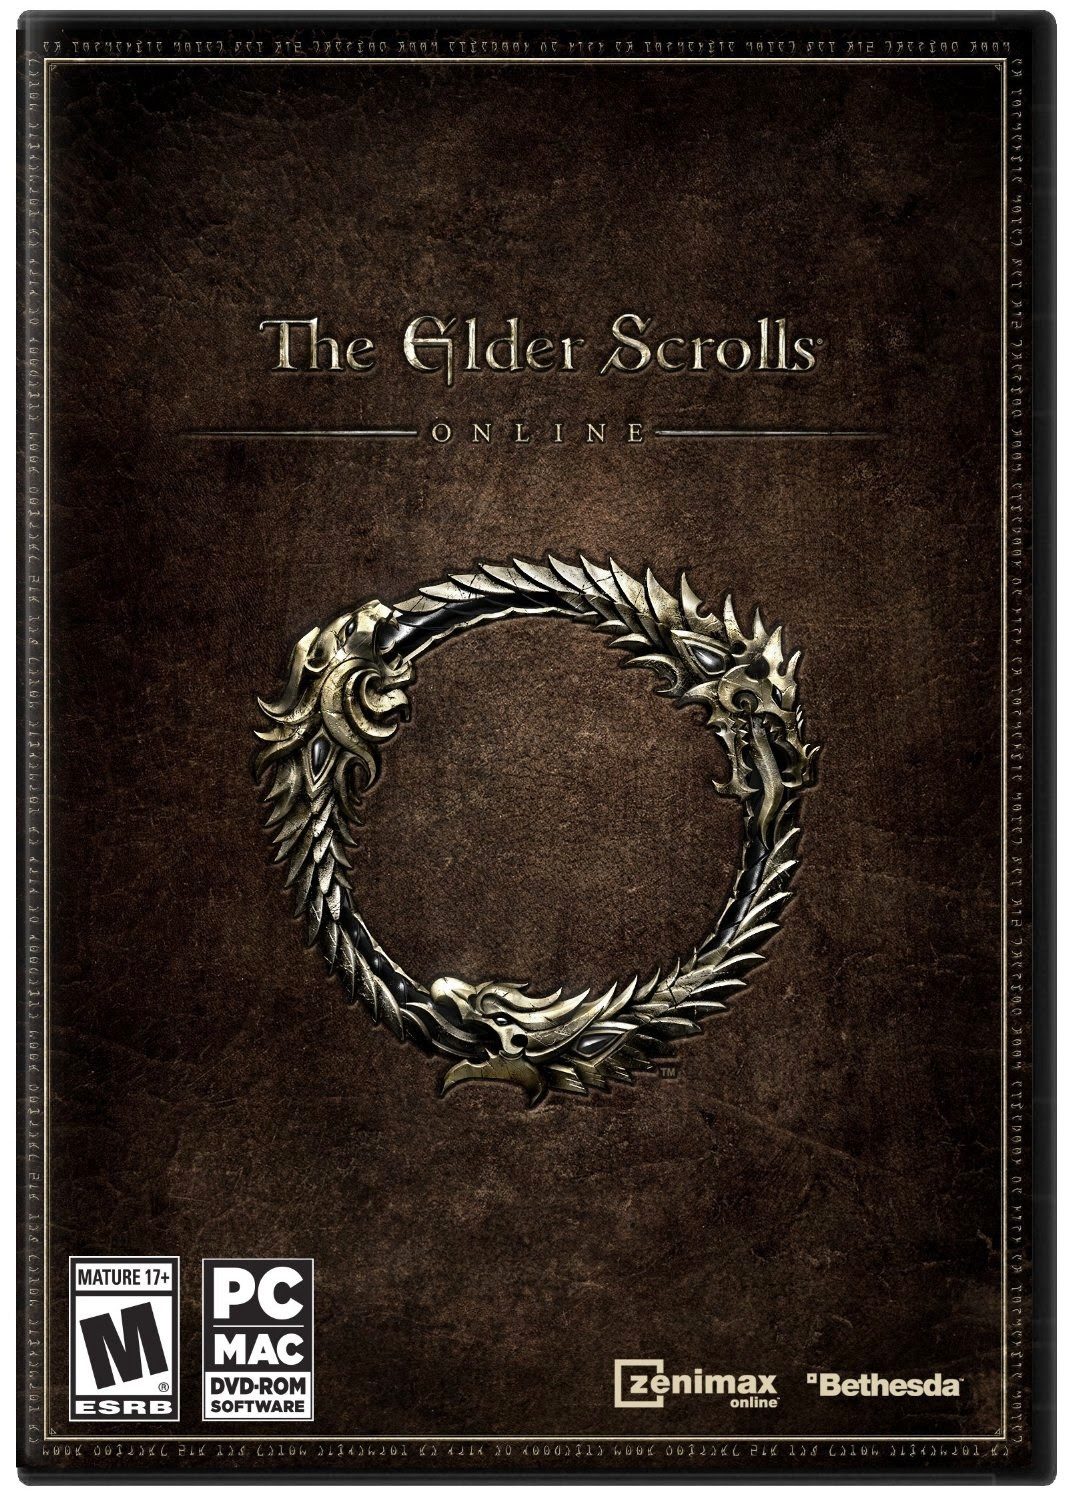 http://www.examiner.com/article/anticipation-for-the-upcoming-release-of-the-elder-scrolls-online#sthash.uU2N88fO.cmfs